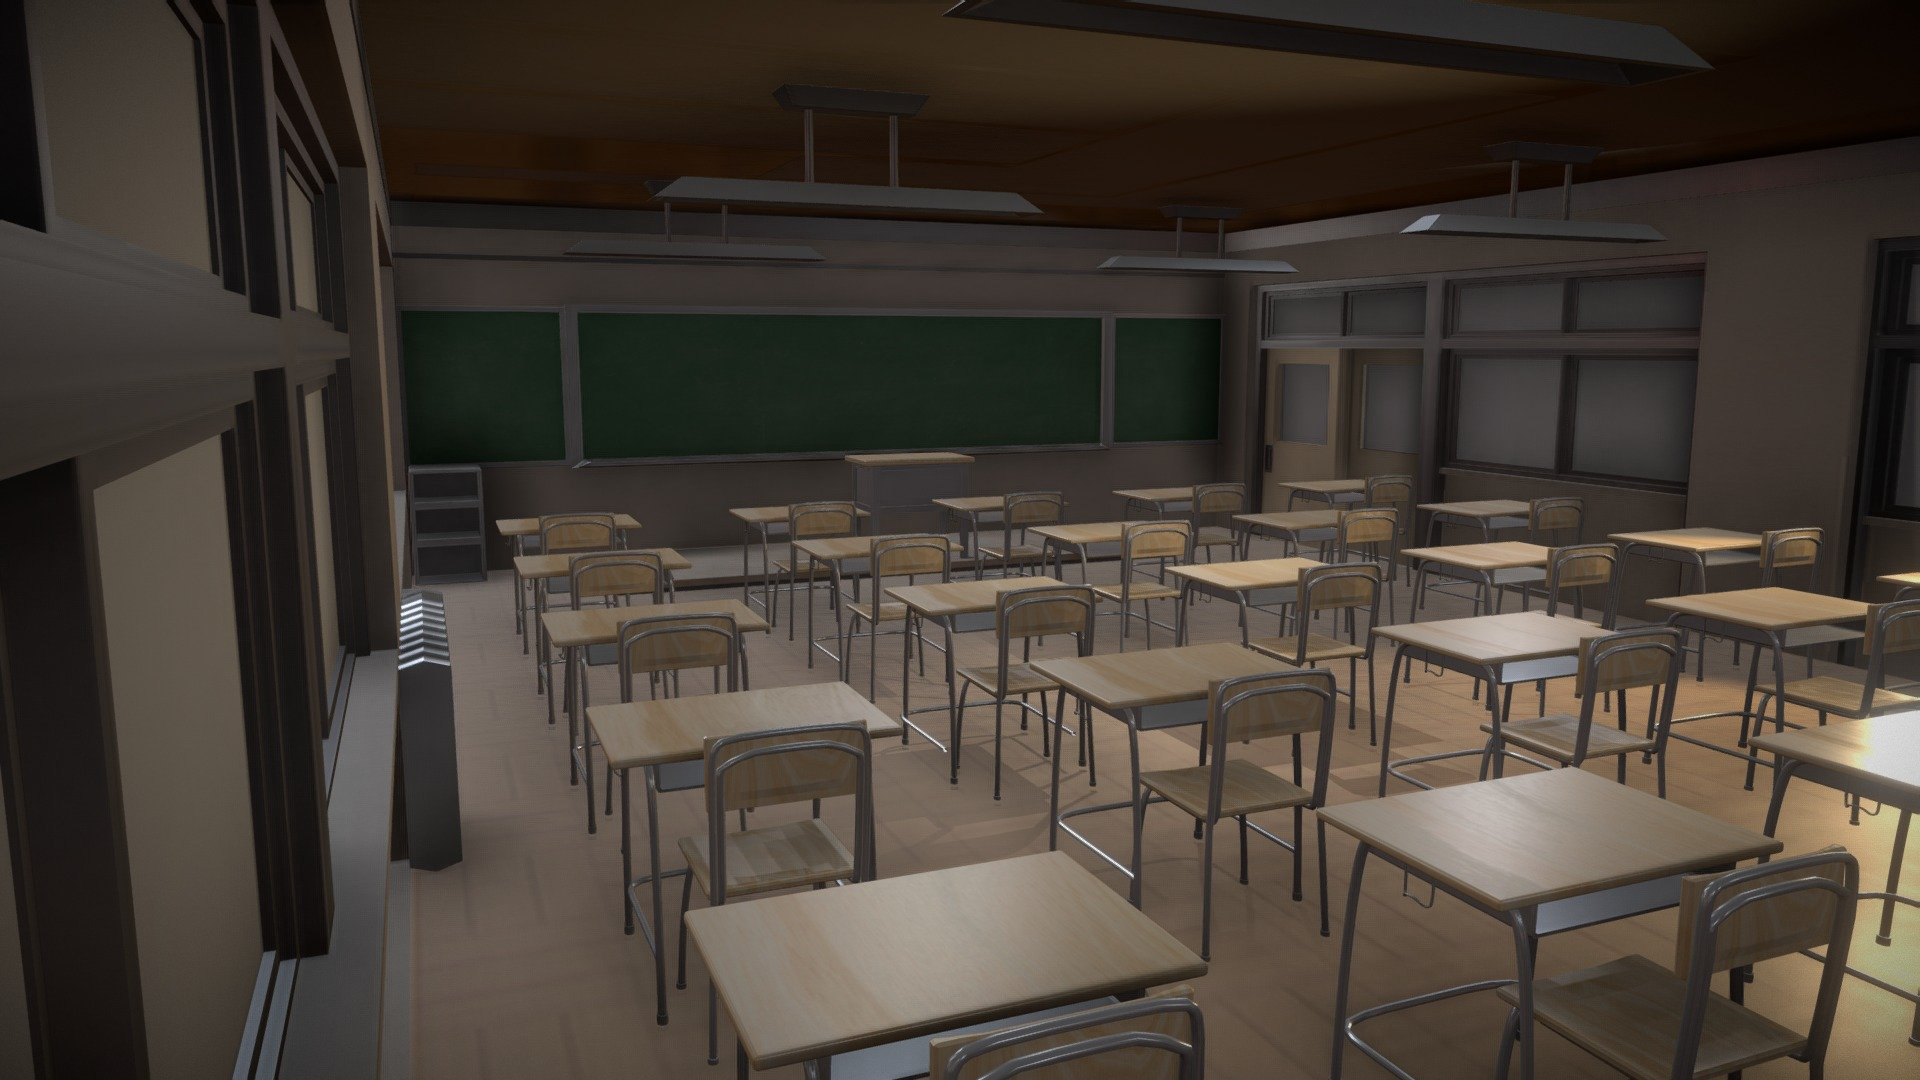 Japanese Classroom Download Free 3d Model By T I A N